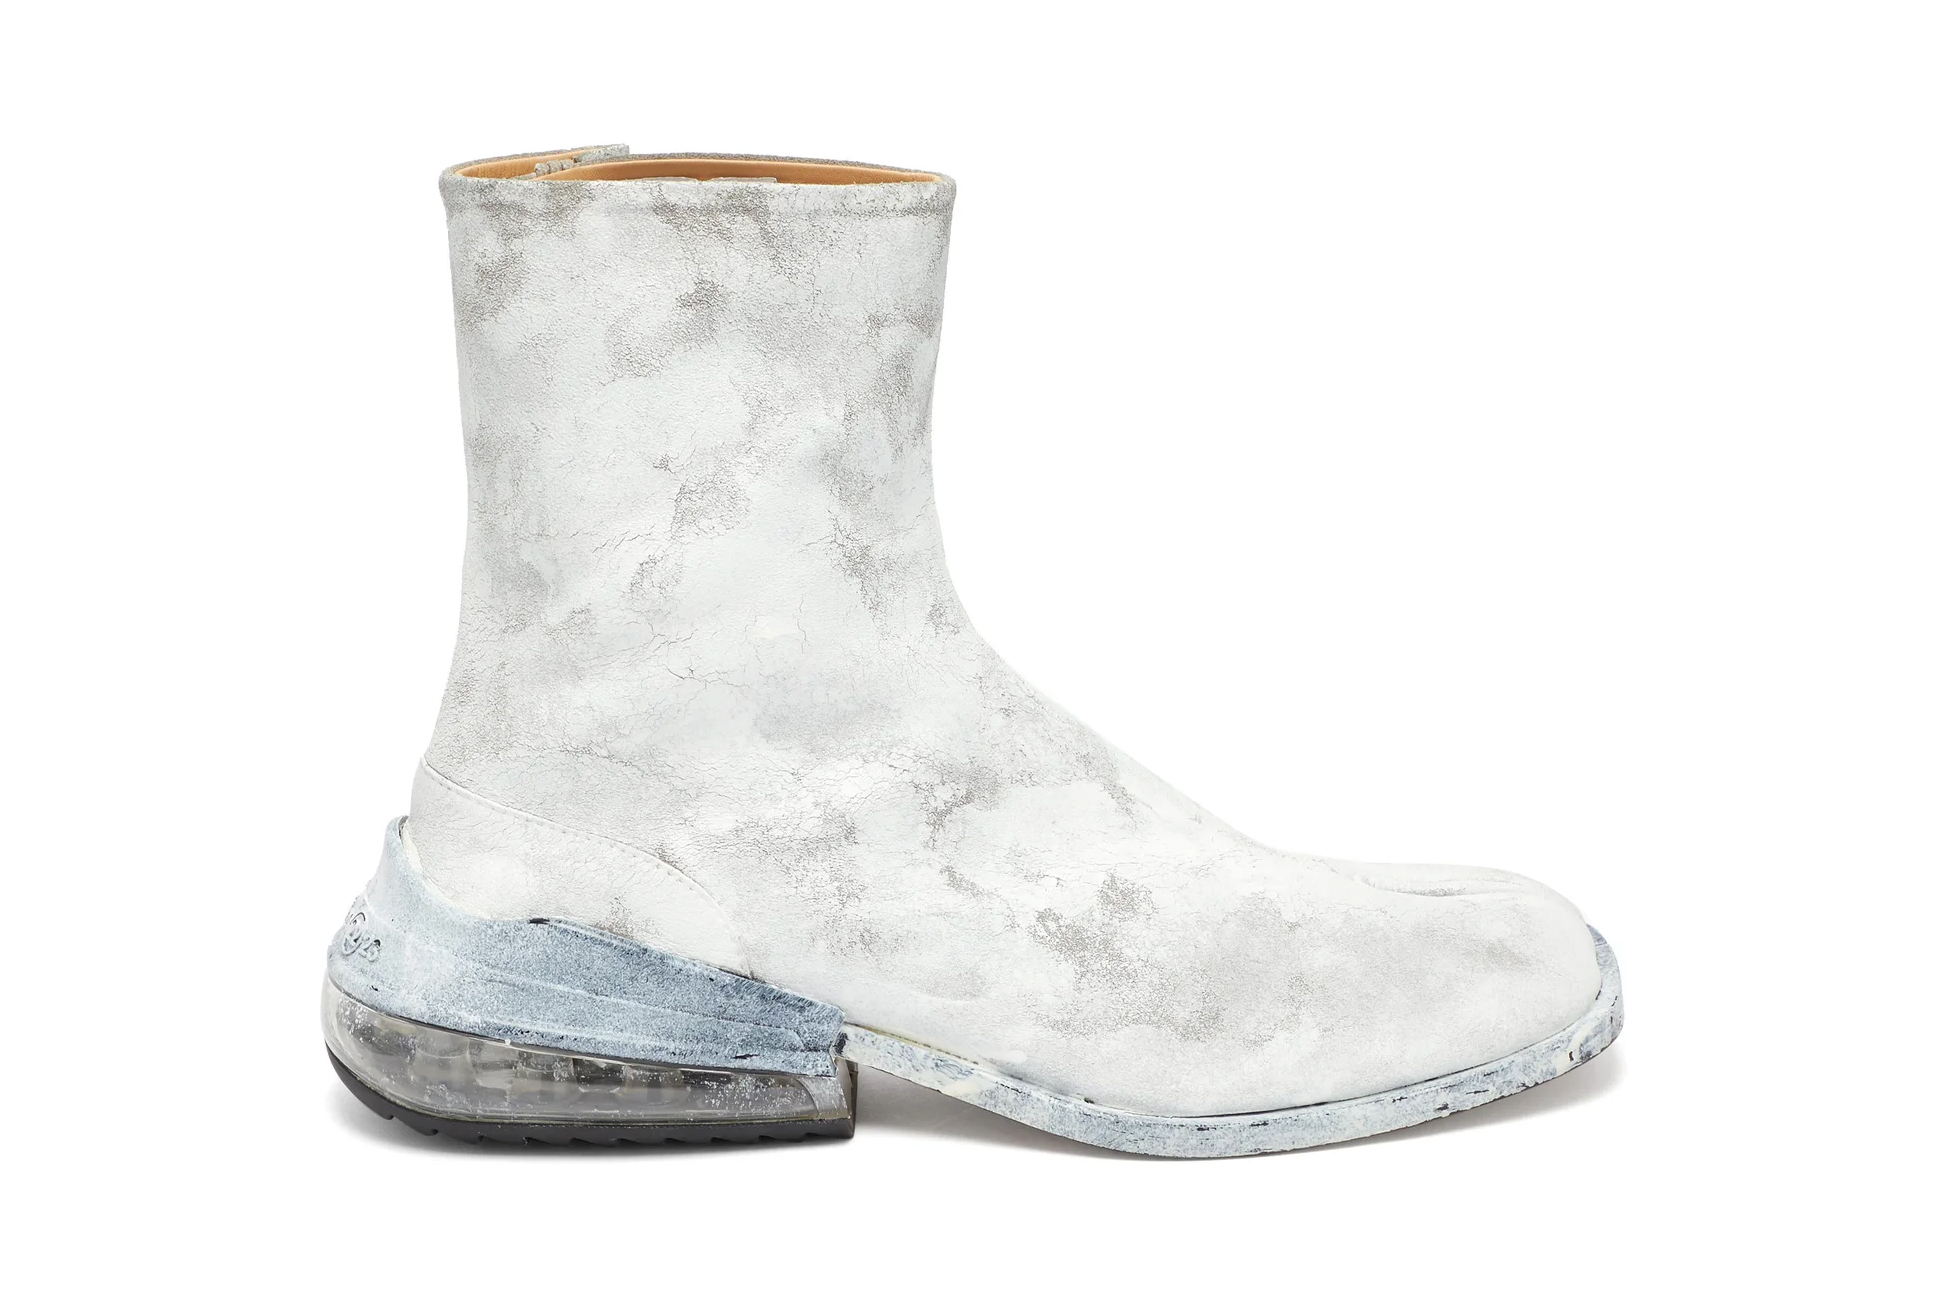 Maison Margiela Tabi Airbag Tabi Ankle Boots Release  Matchesfashion retail painted cracked paint MMM boots footwear tabi split-toe Antwerp